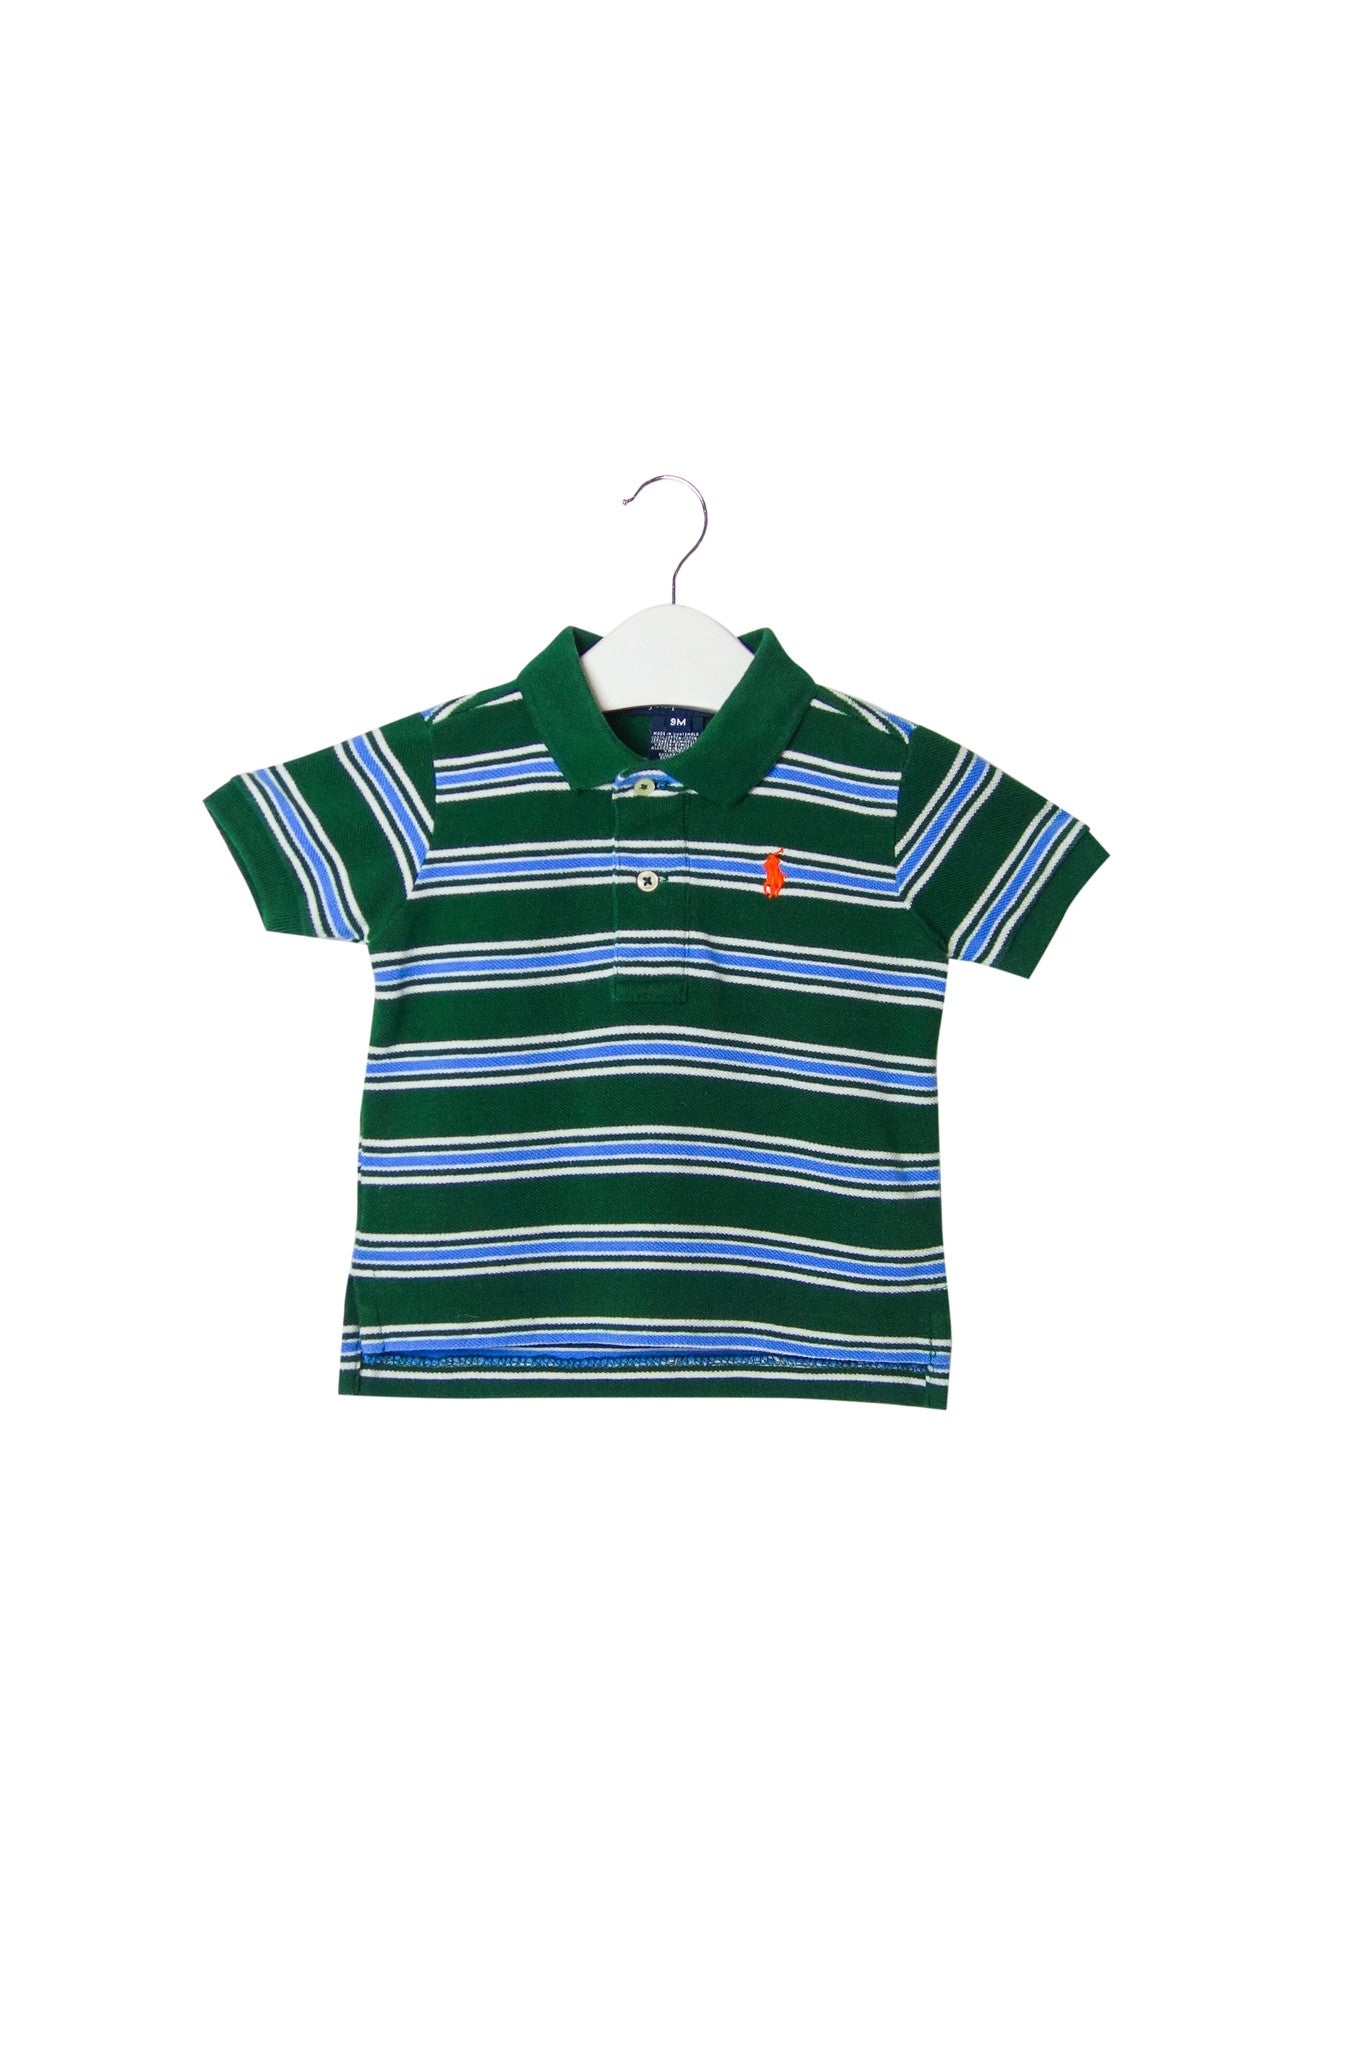 10003381 Polo Ralph Lauren Baby~Polo 9M at Retykle